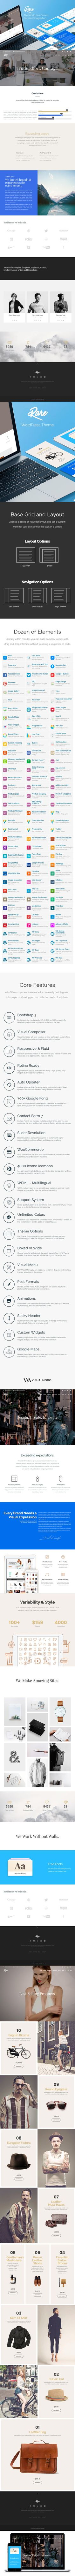 211 Best WordPress Landing Page Themes images in 2018 | Wordpress